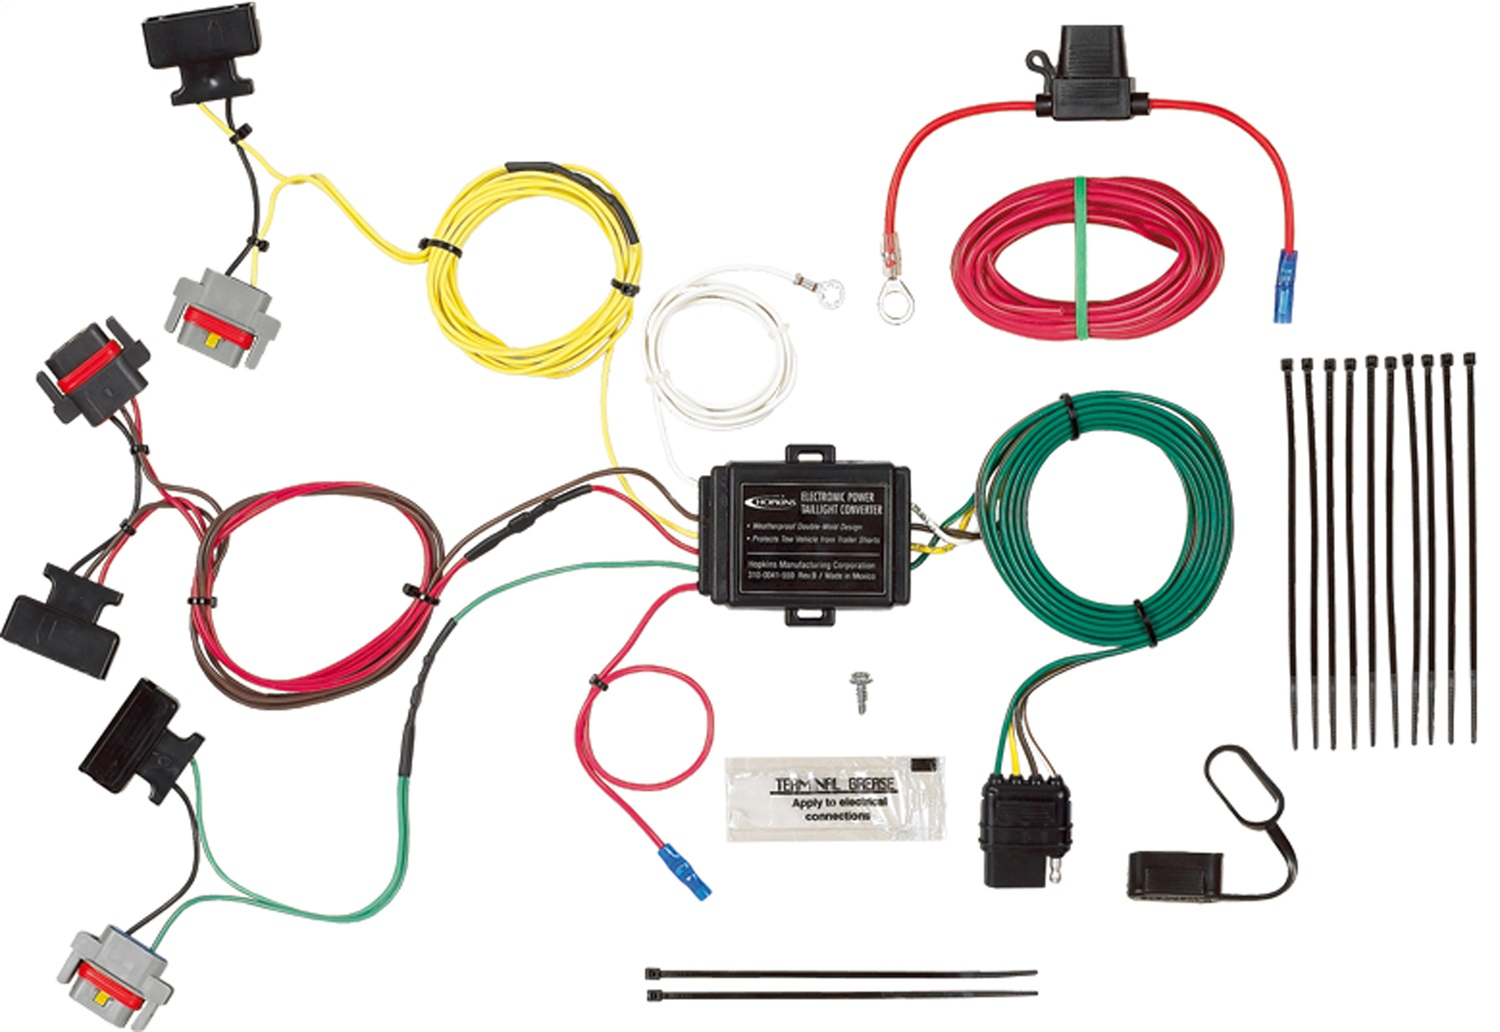 hight resolution of hopkins towing solution 11142435 trailer wire harness walmart comhopkins wire harness 4